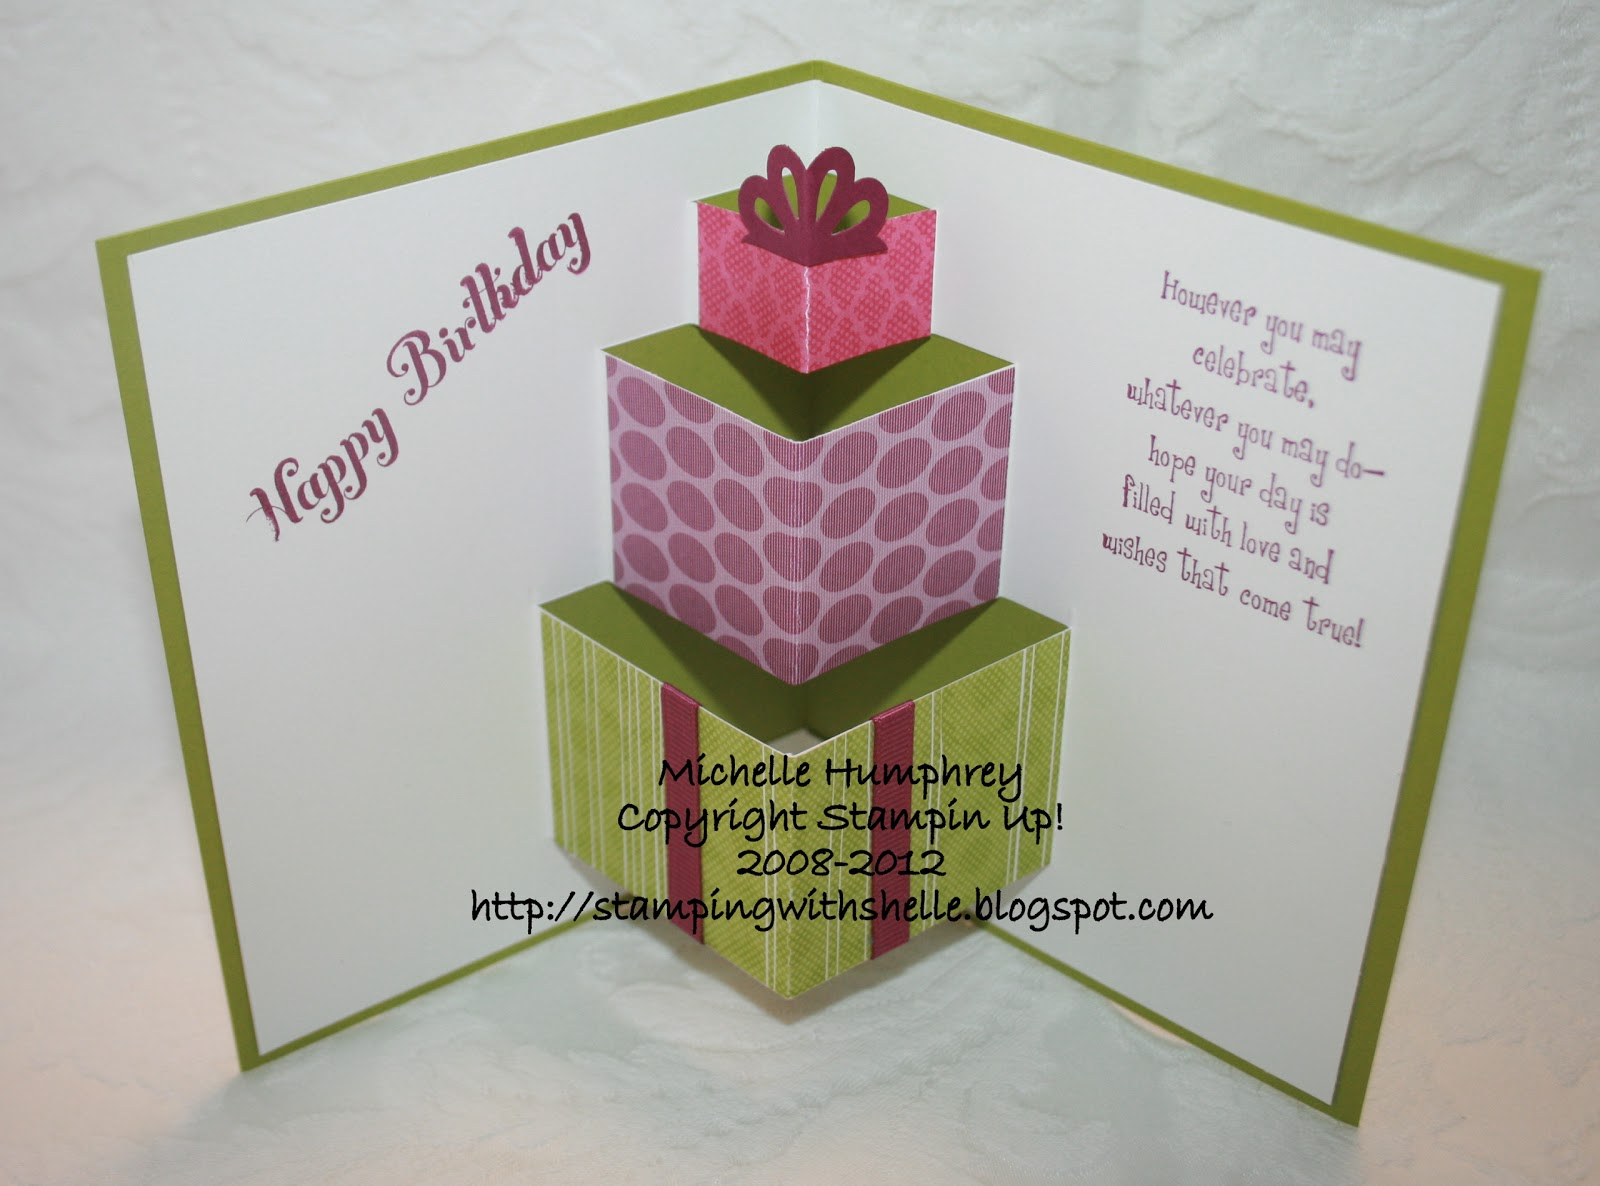 Stamping with shelle pop up birthday card stamping with shelle bookmarktalkfo Image collections